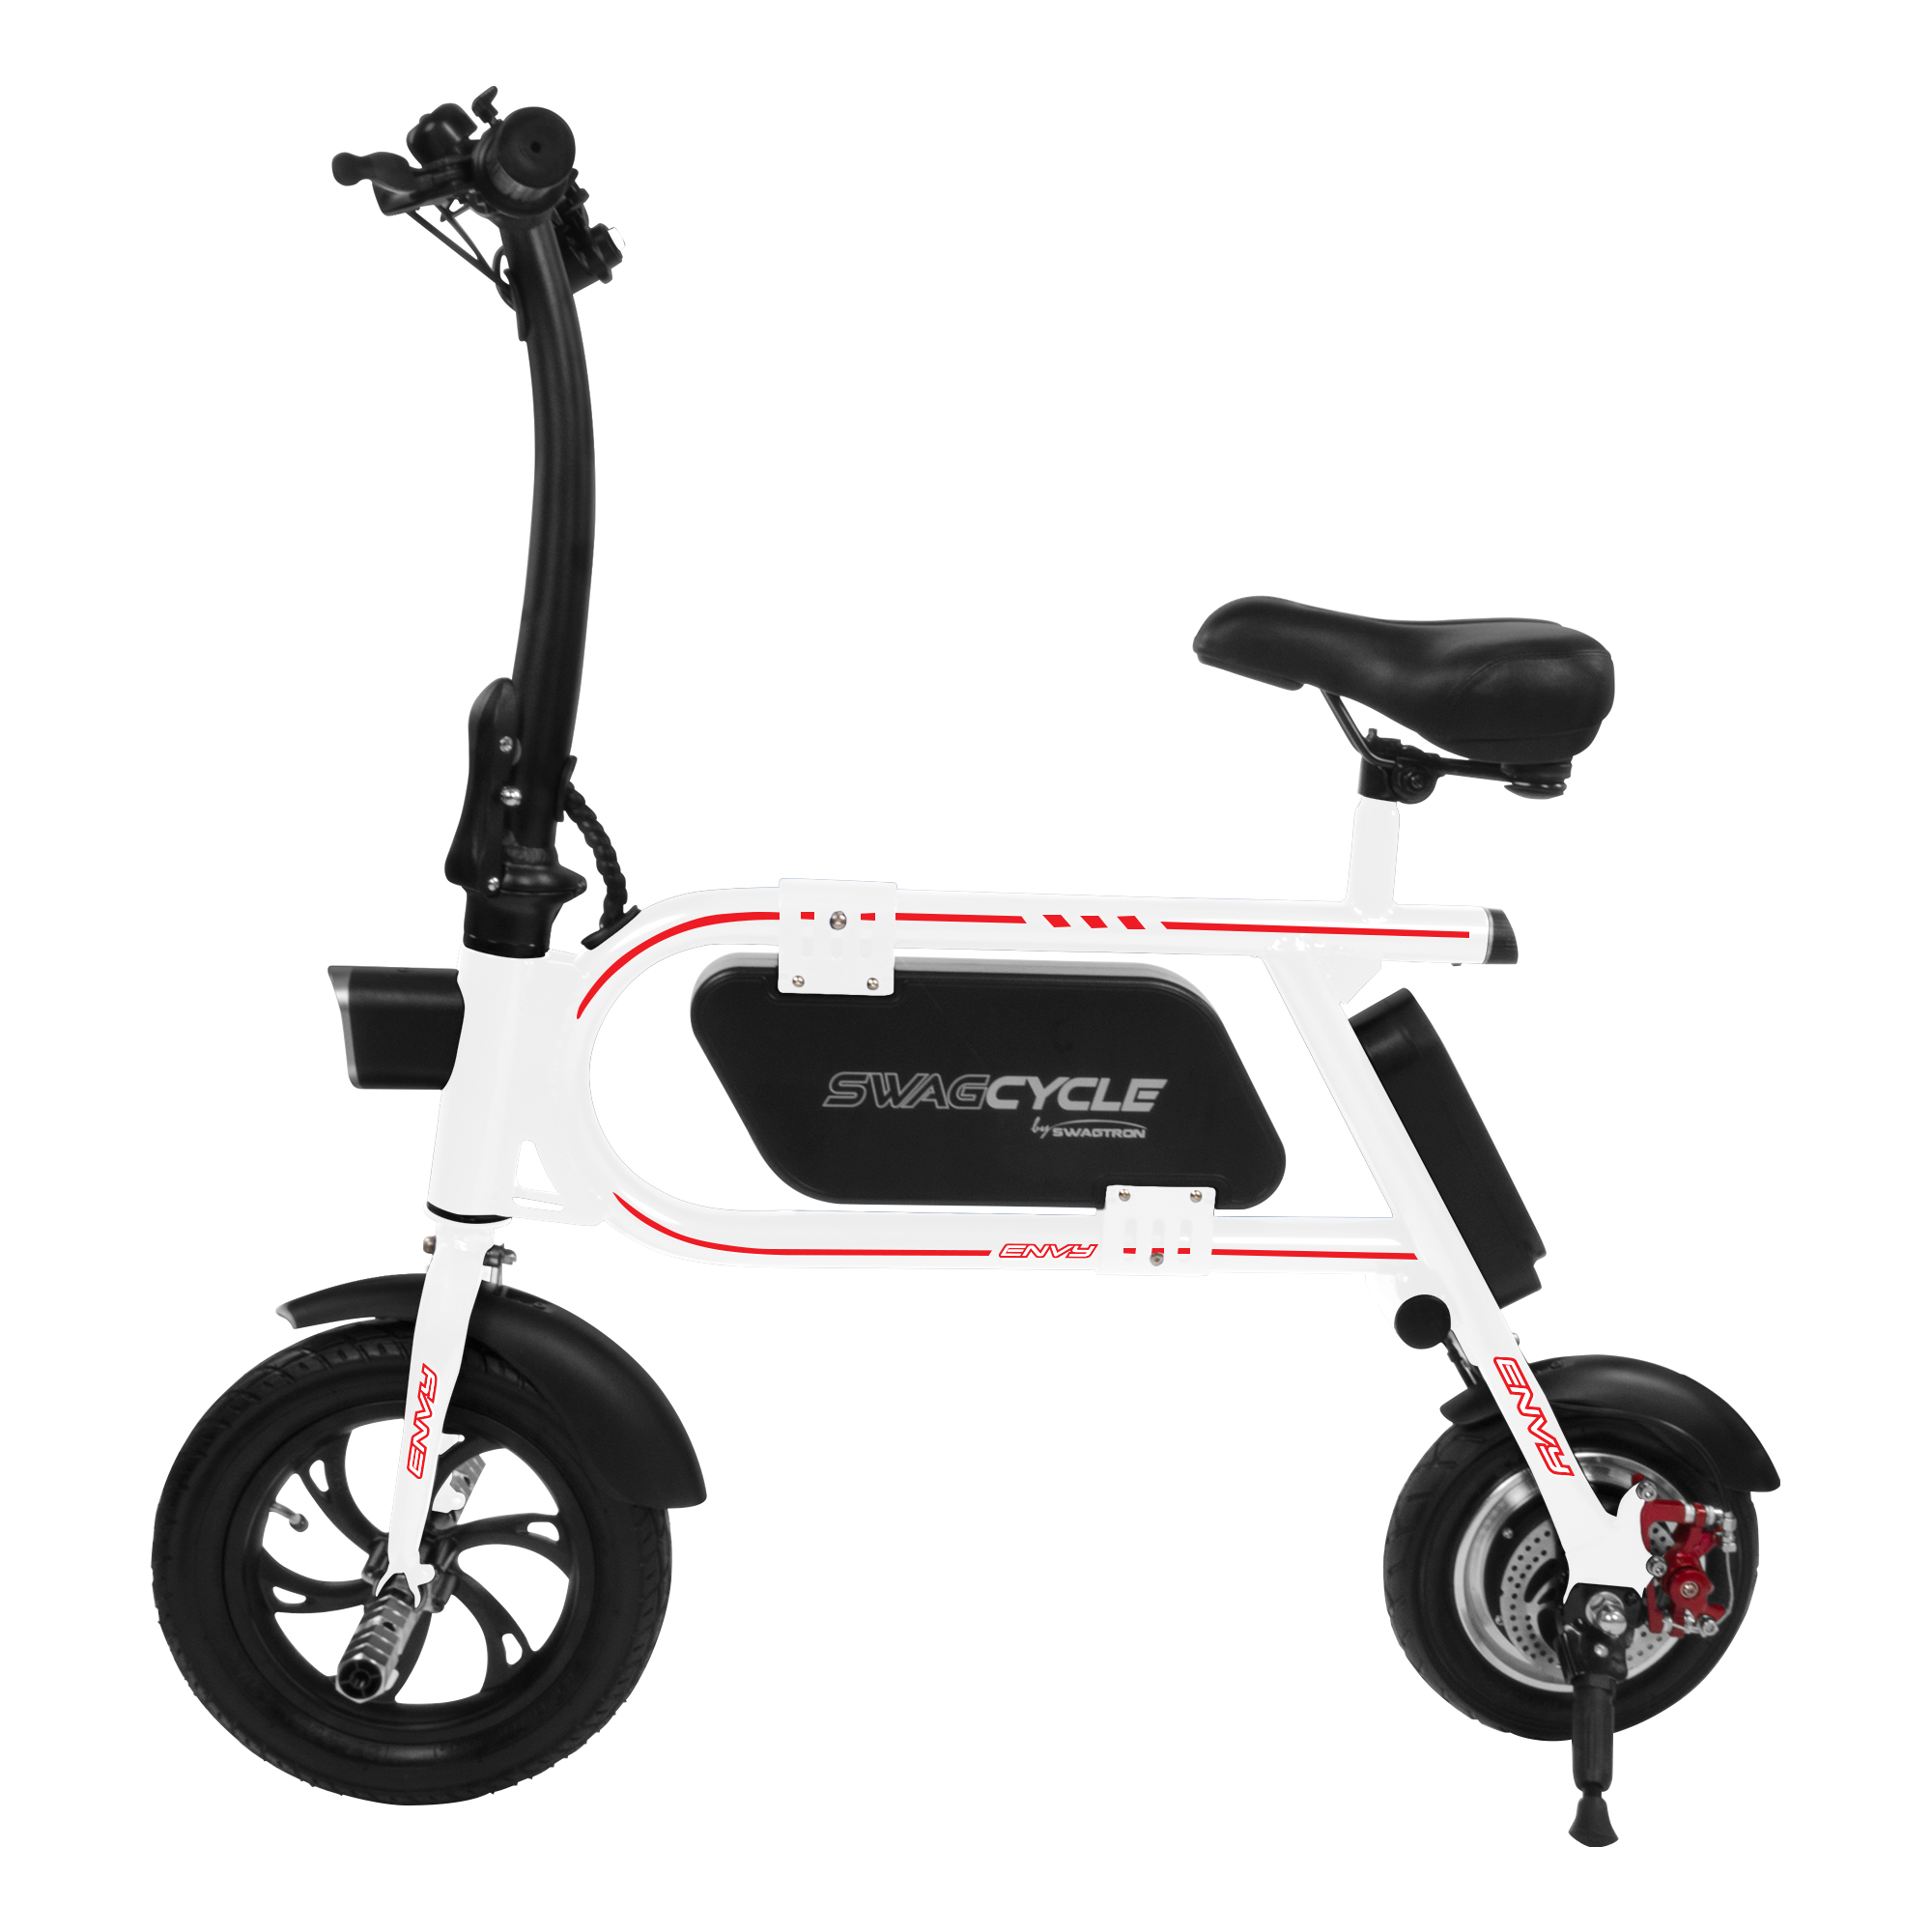 swagtron swagcycle envy aluminum frame folding e bike for. Black Bedroom Furniture Sets. Home Design Ideas